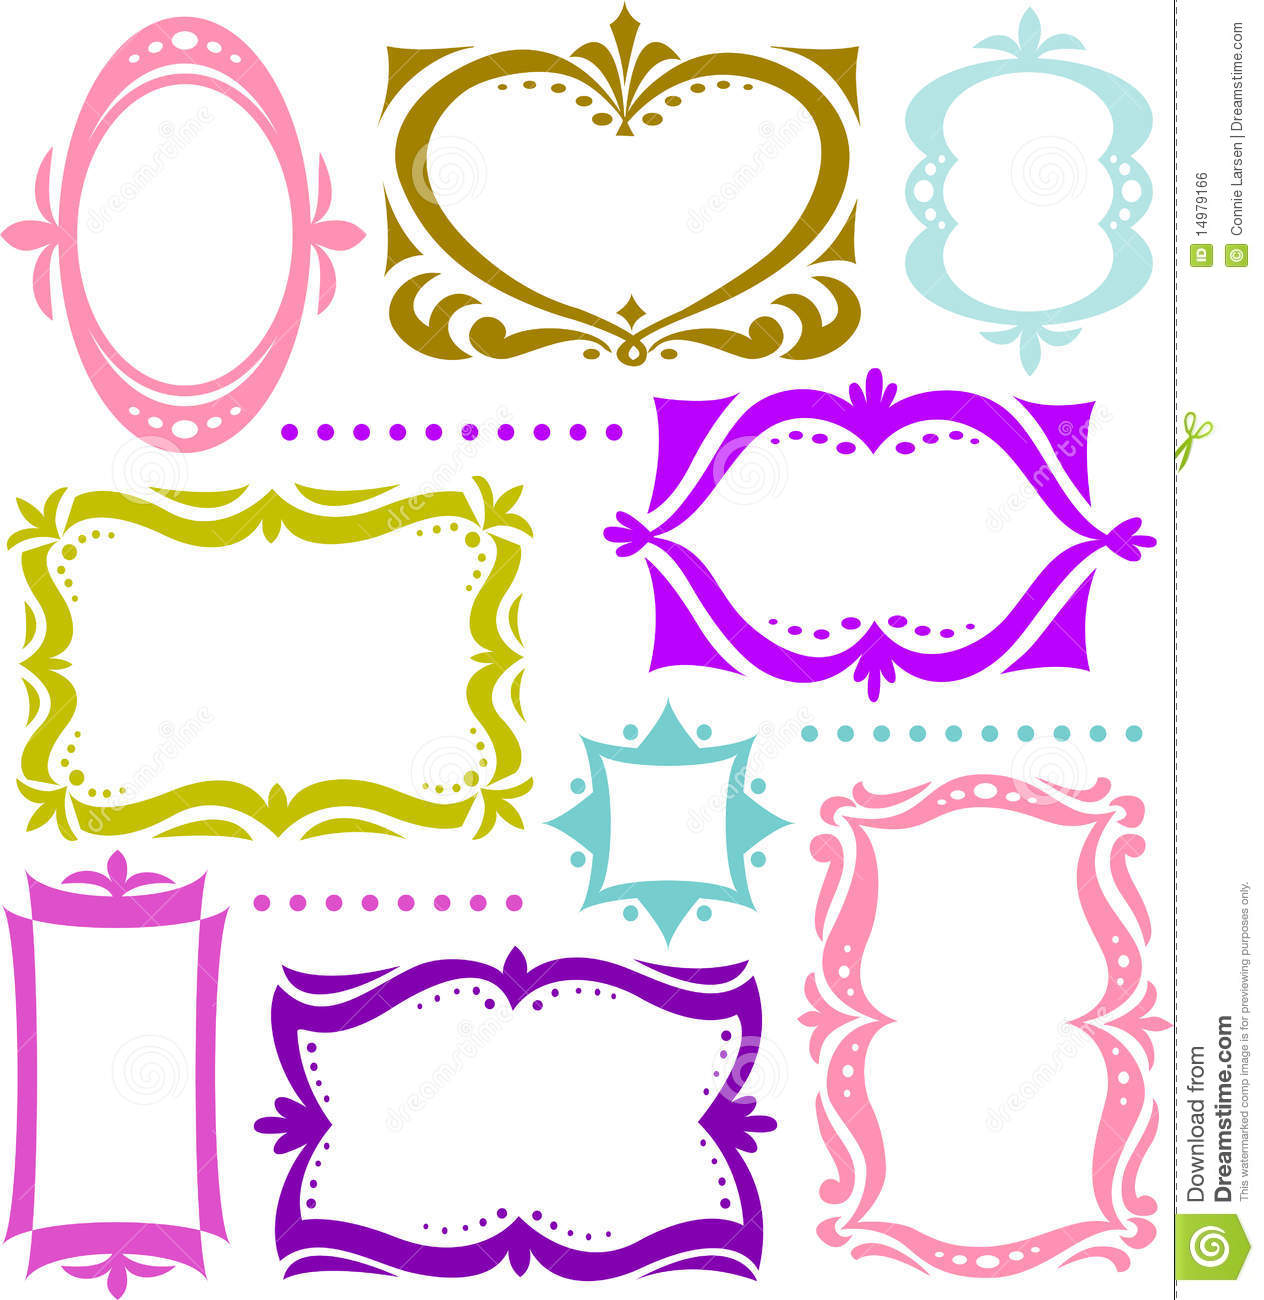 fun retro shape frame collectionai